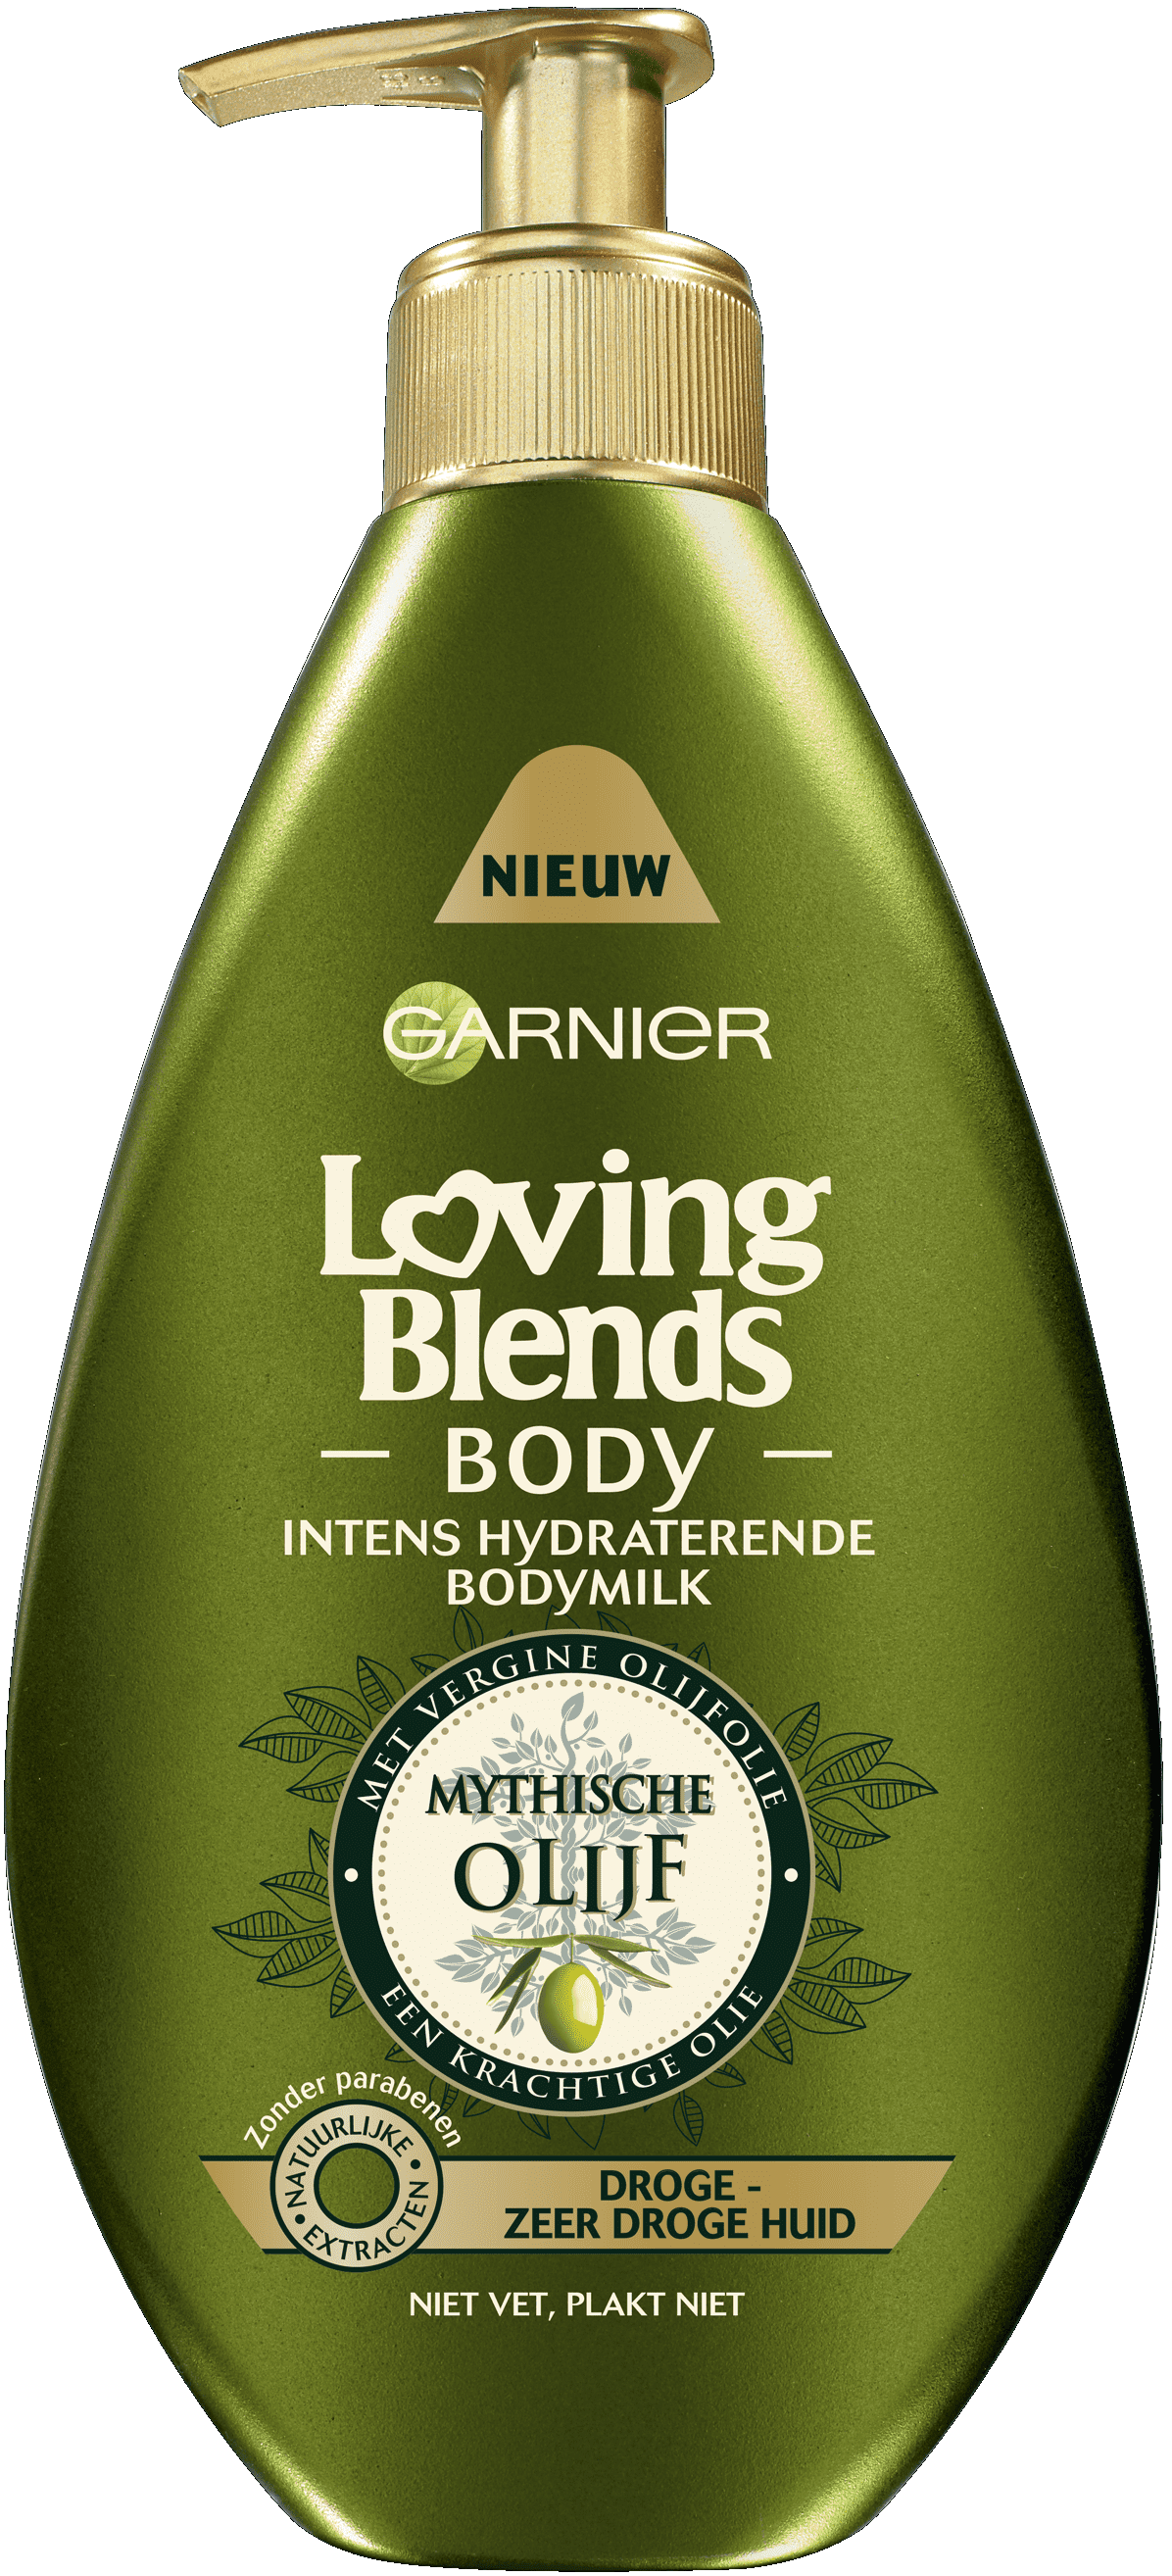 Garnier Loving Blends Bodymilk - Mythische Olijf 250 ml